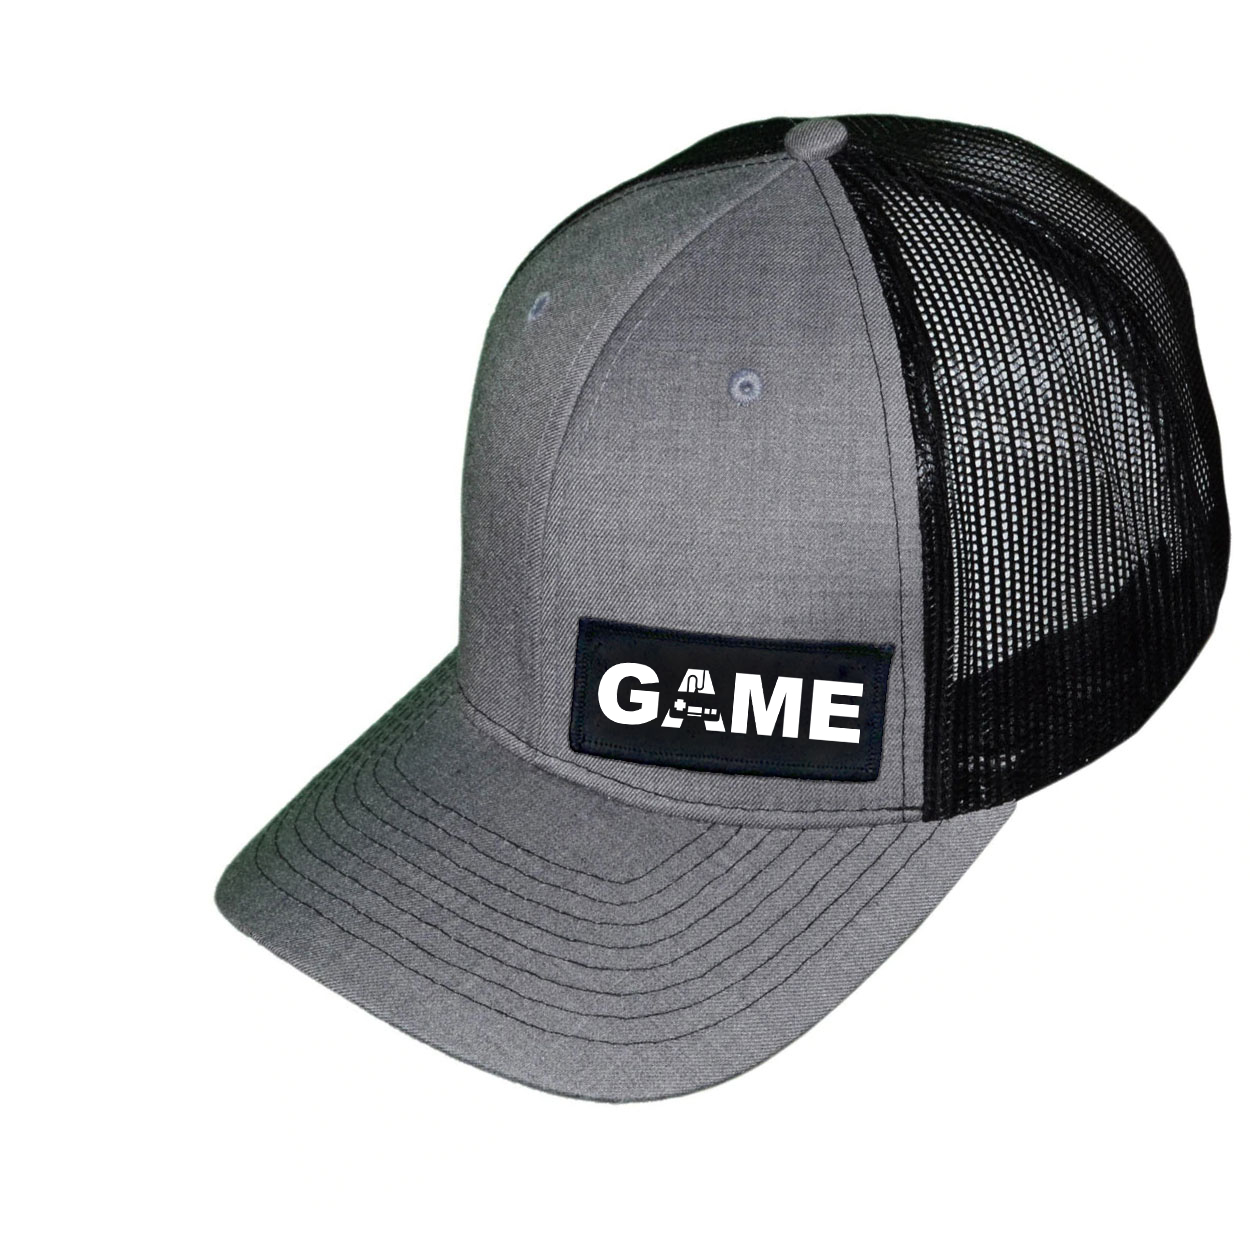 Game Controller Logo Night Out Woven Patch Snapback Trucker Hat Heather Gray/Black (White Logo)